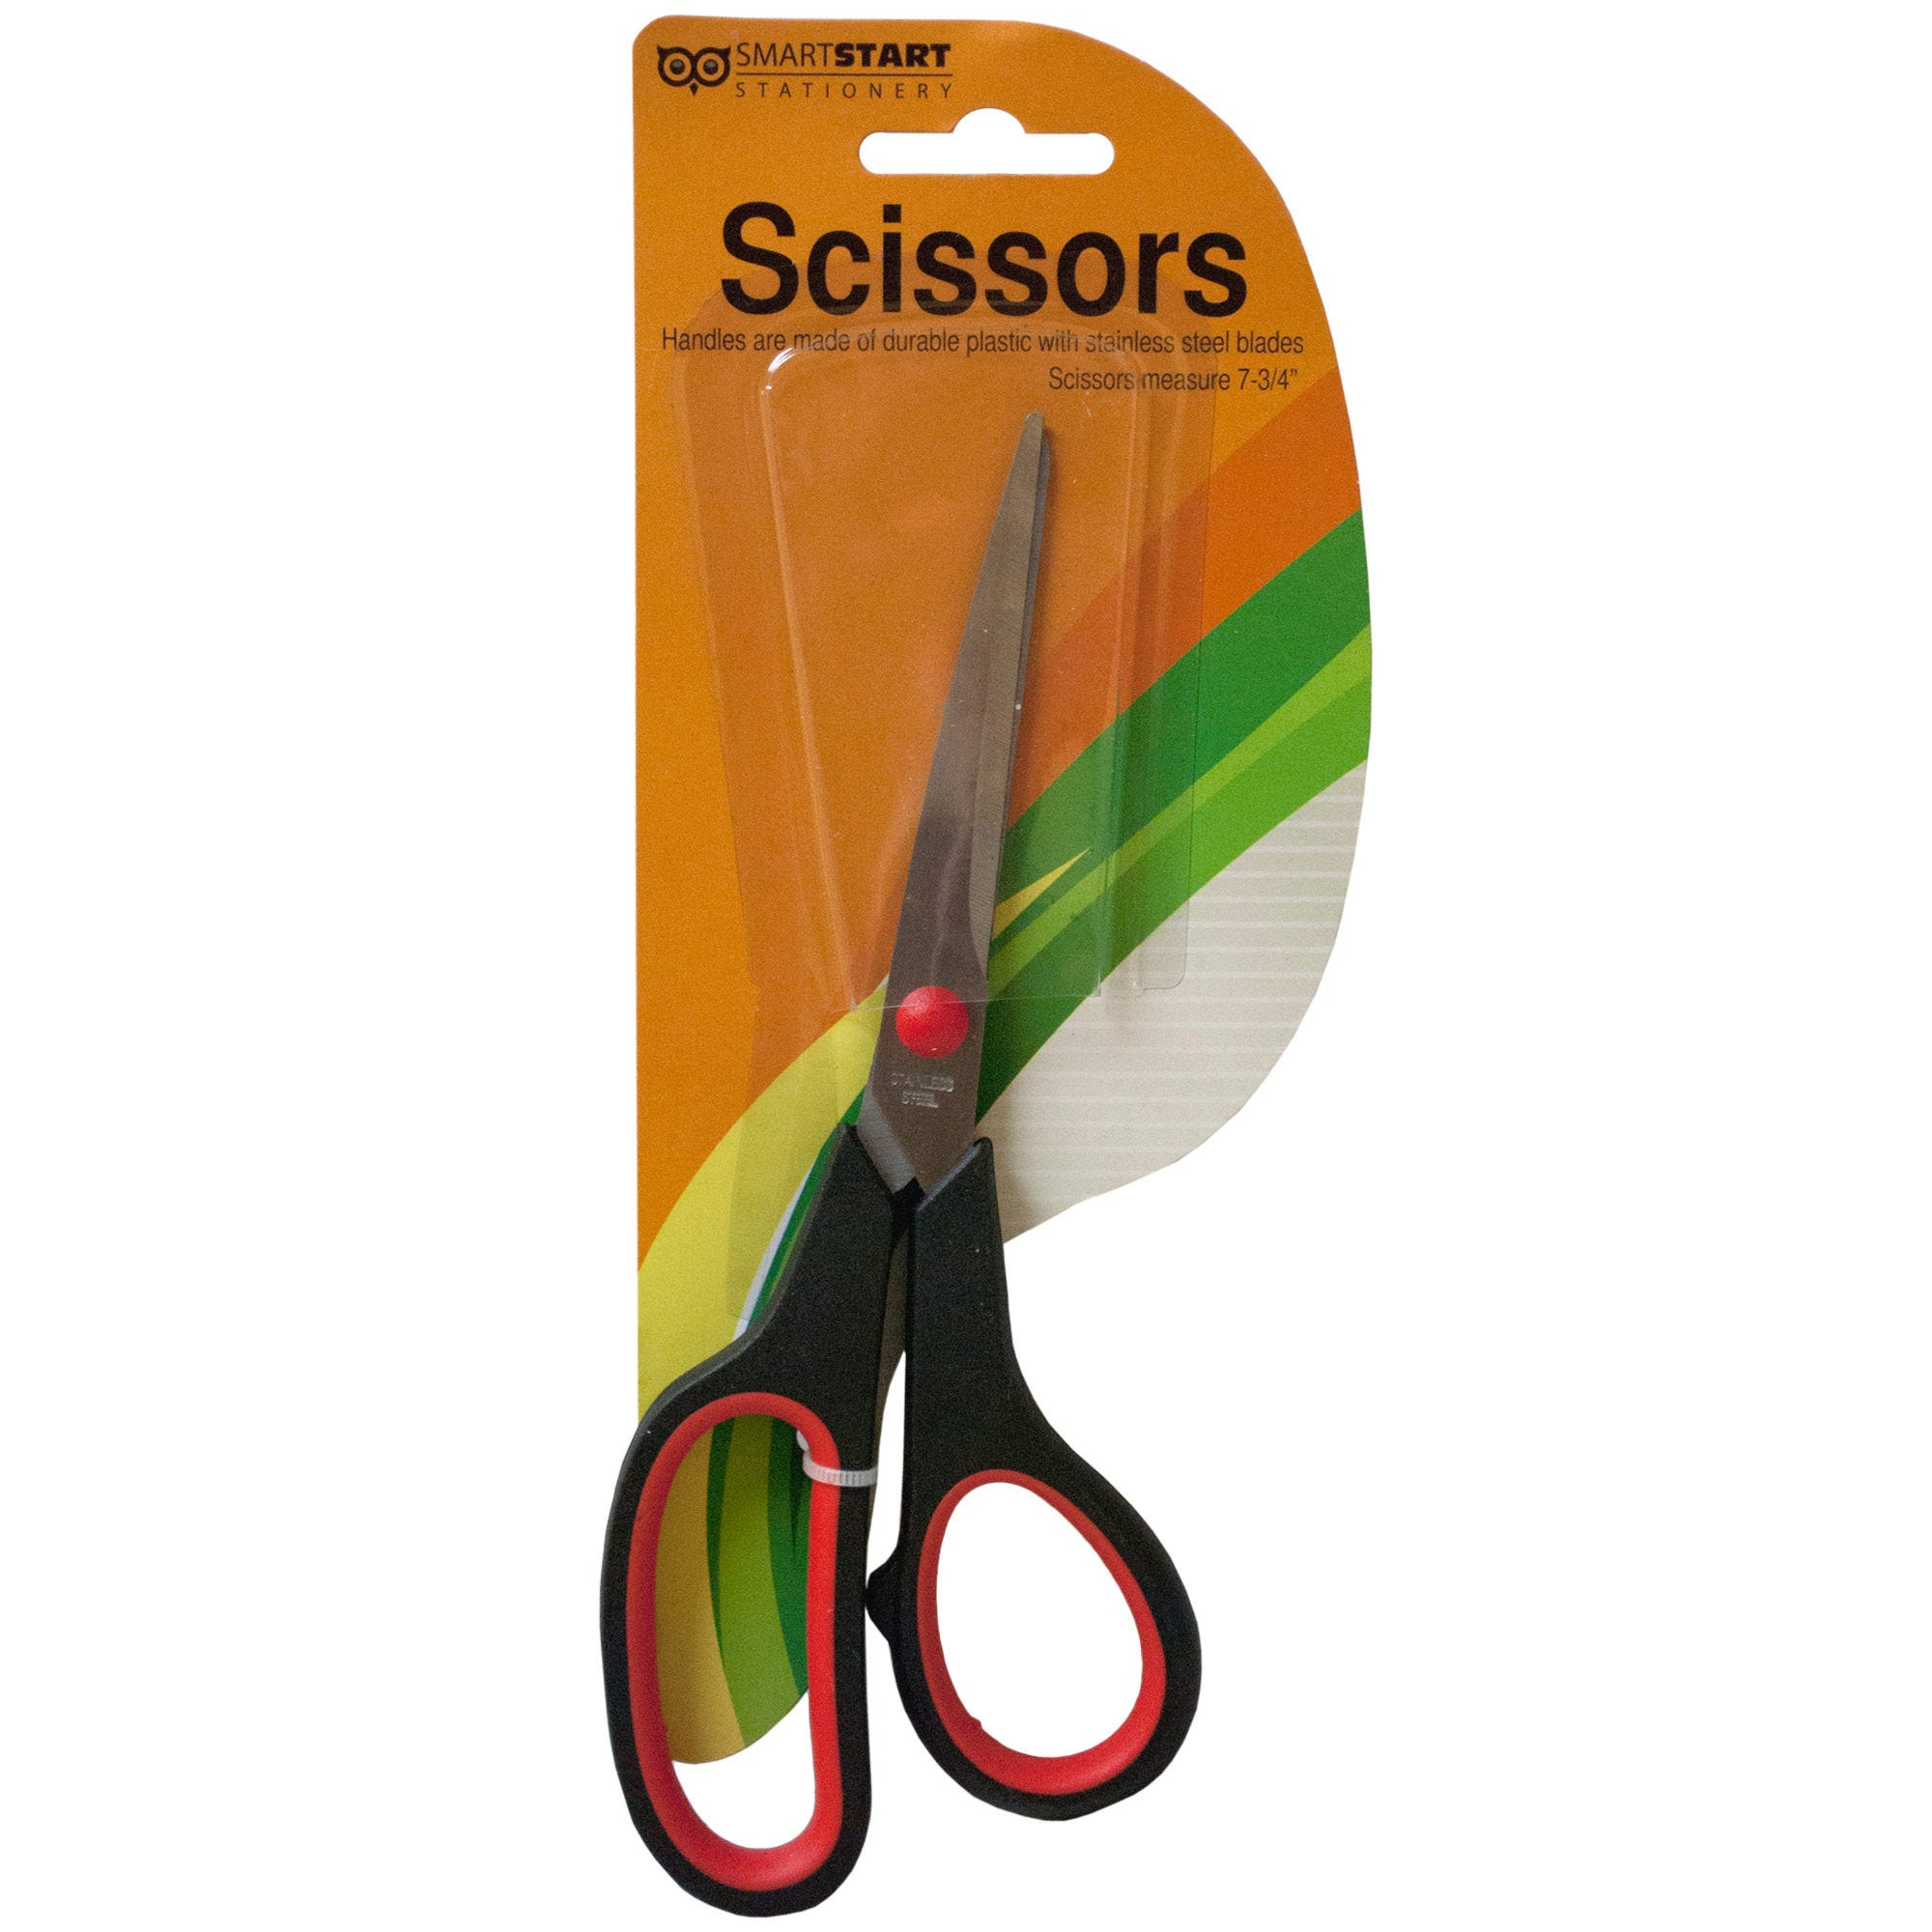 Stainless Steel SCISSORS with Plastic Handles- Qty 24